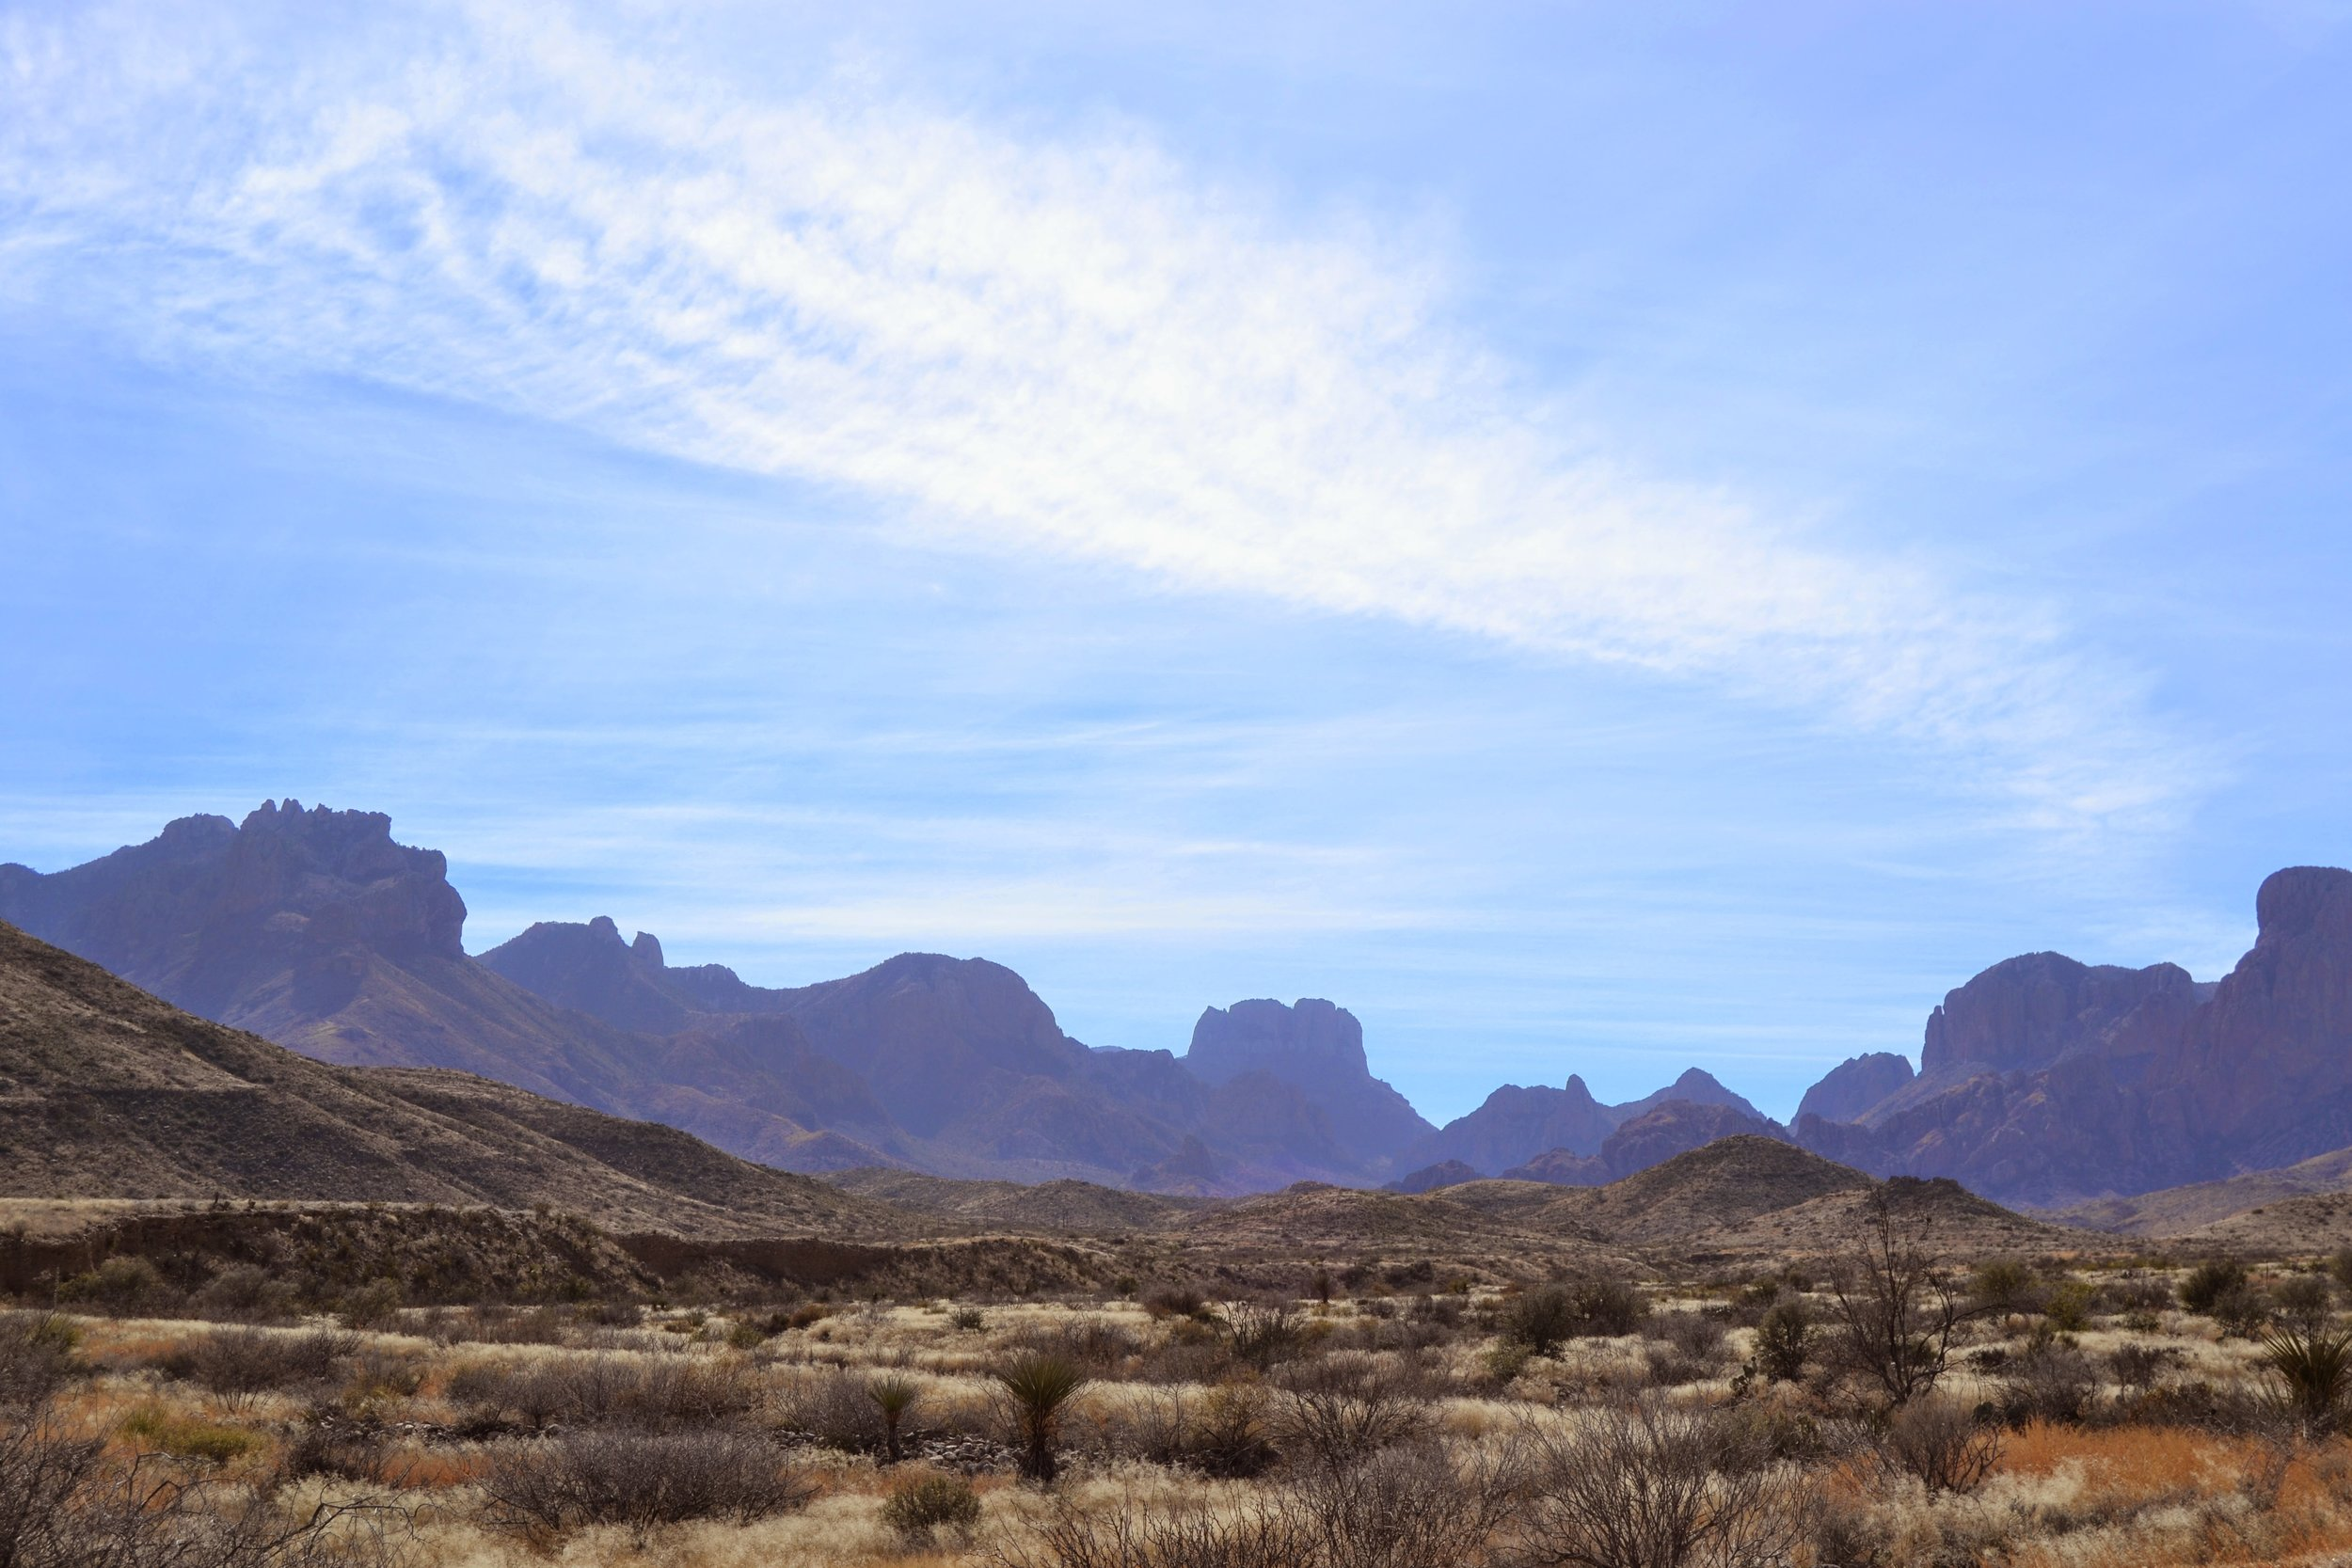 A view while driving down into Big Bend